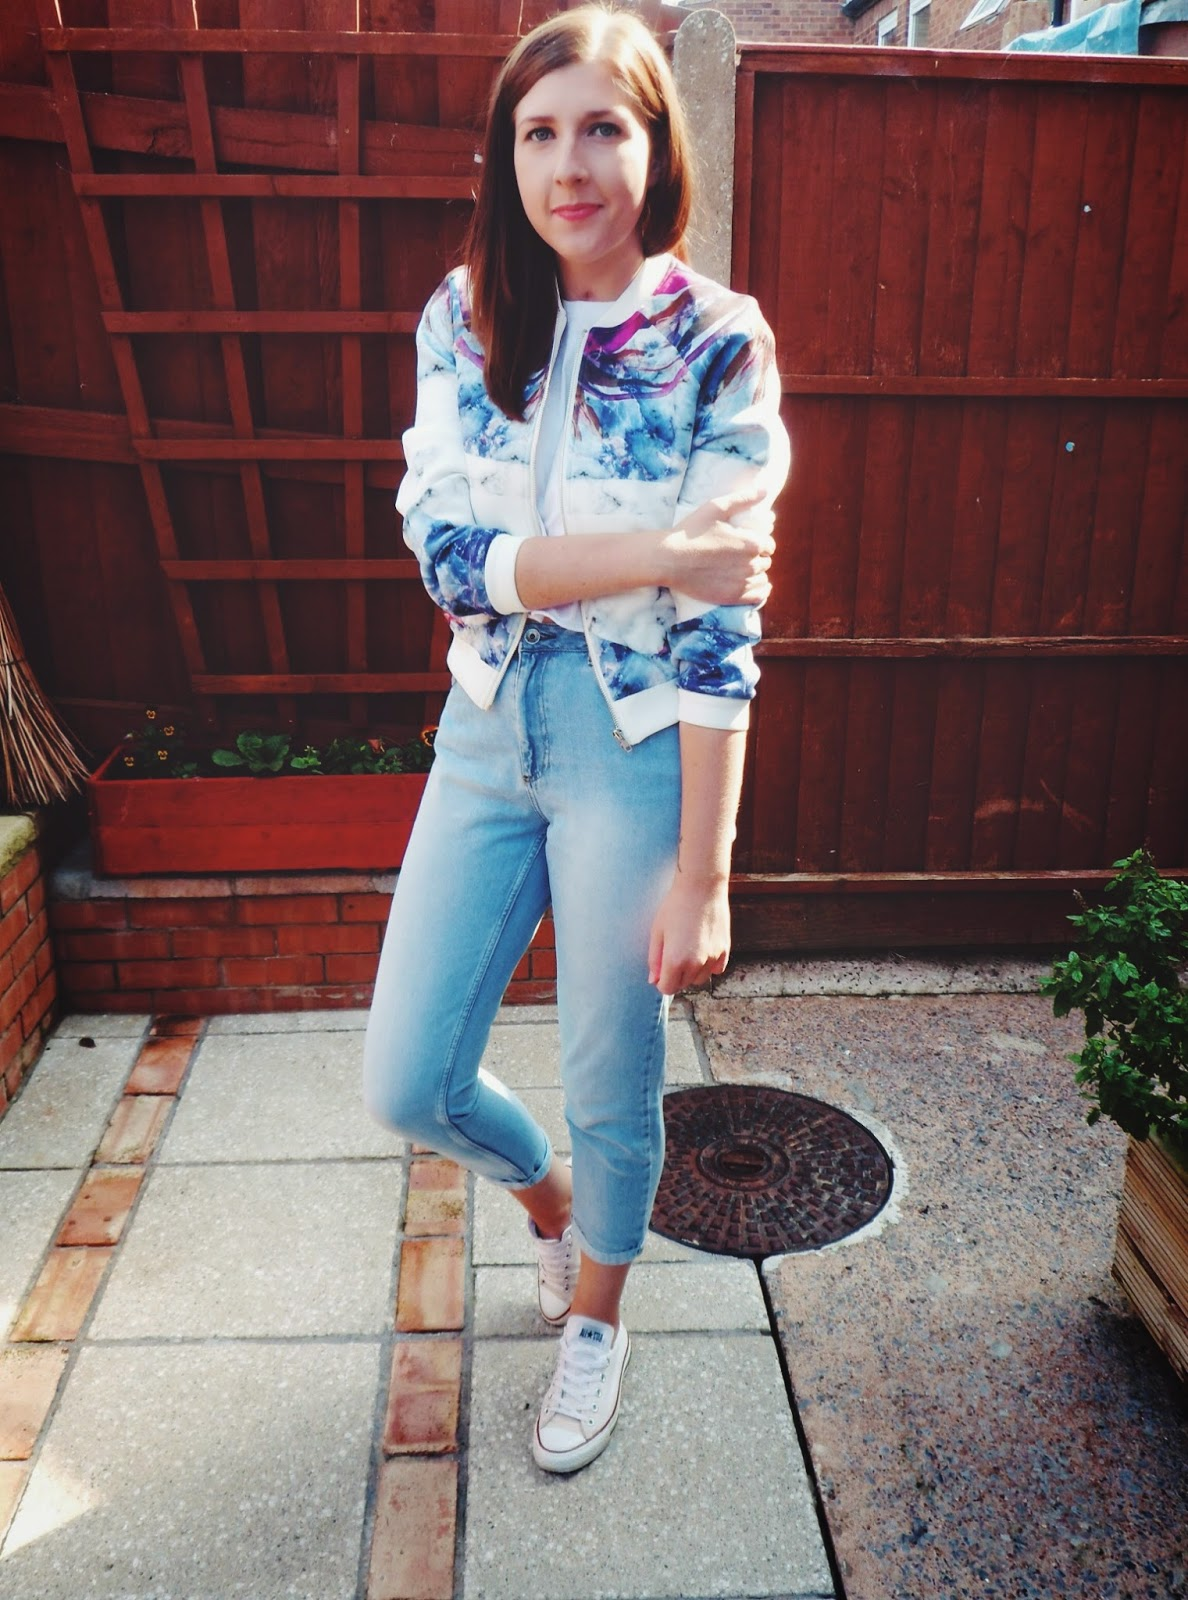 ASOS, asseenonme, bomberjacket, topshop, fblogger, fbloggers, jellyshoes, momjeans, missguided, momshorts, newlook, ootd, outfitoftheday, summer, whatibought, whatimwearing, wiw